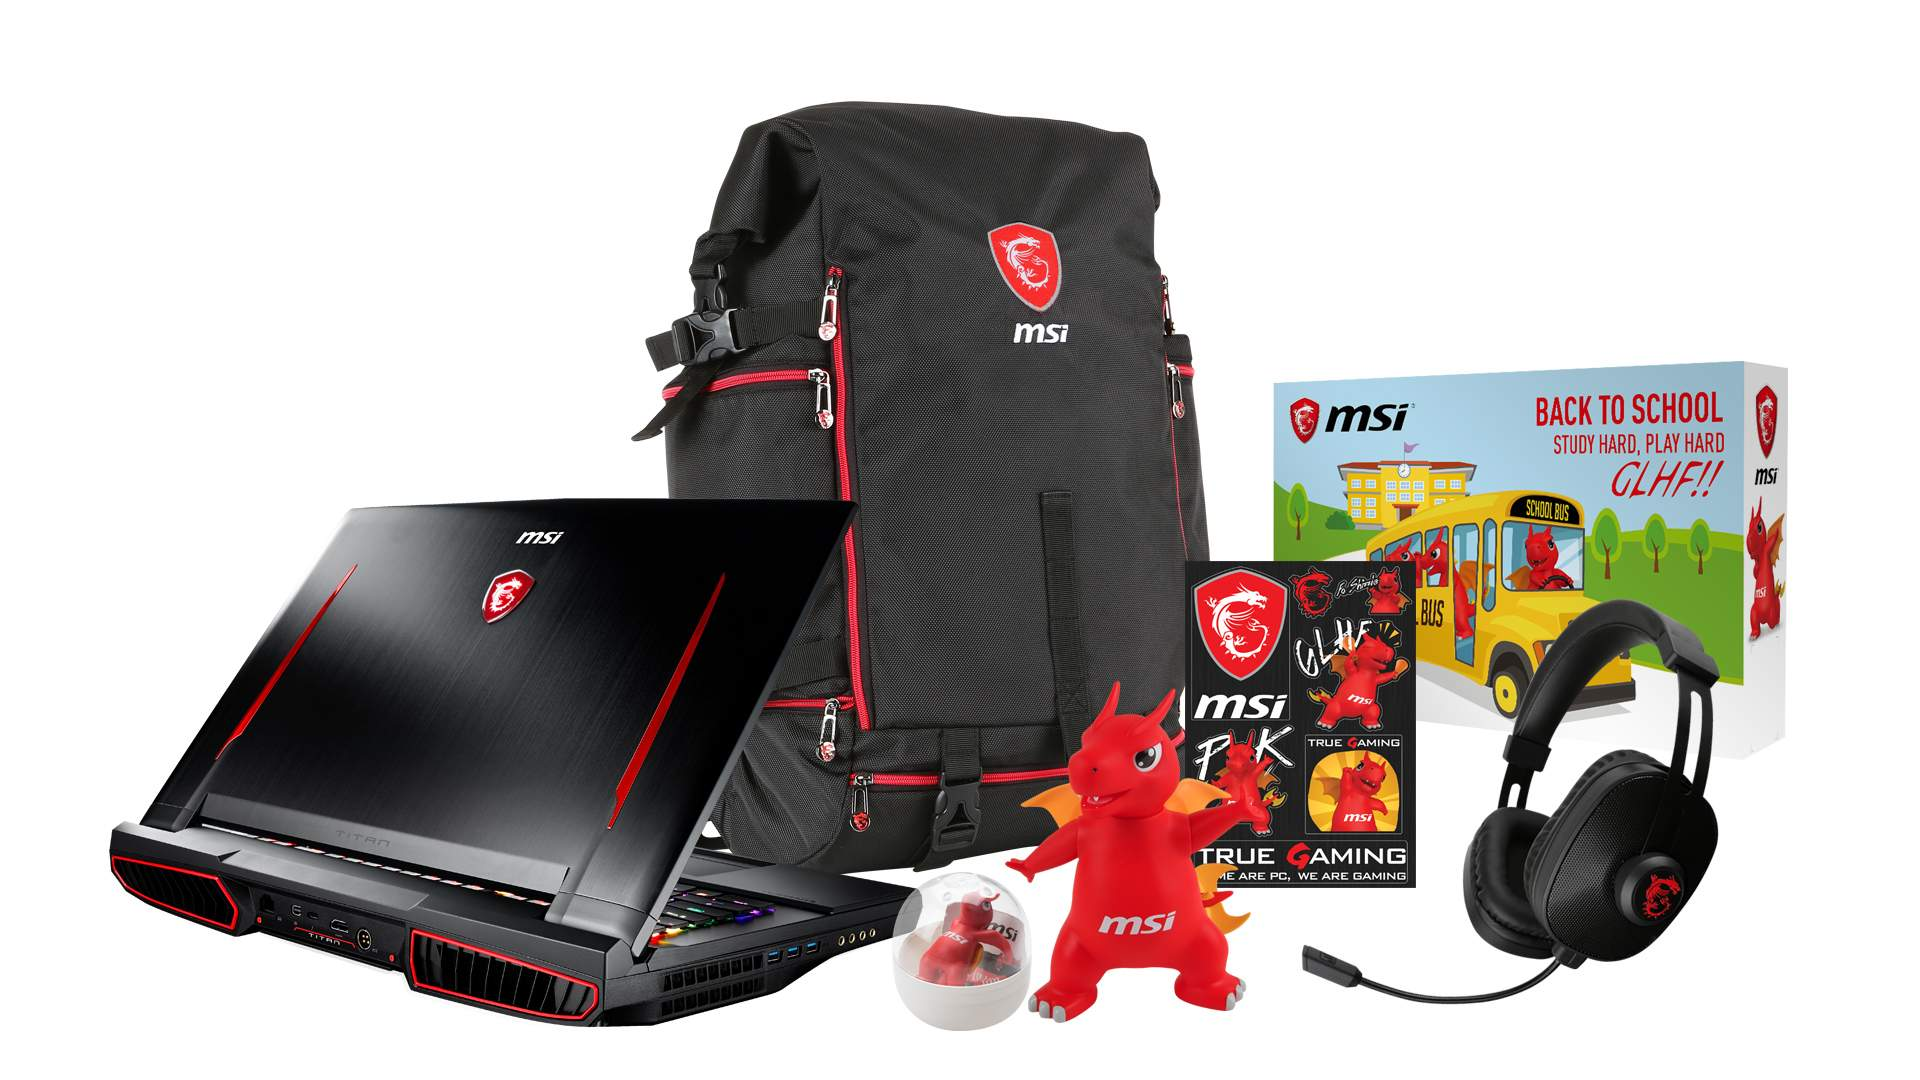 Accessori pacchetto omaggi notebook MSI Summer fun time